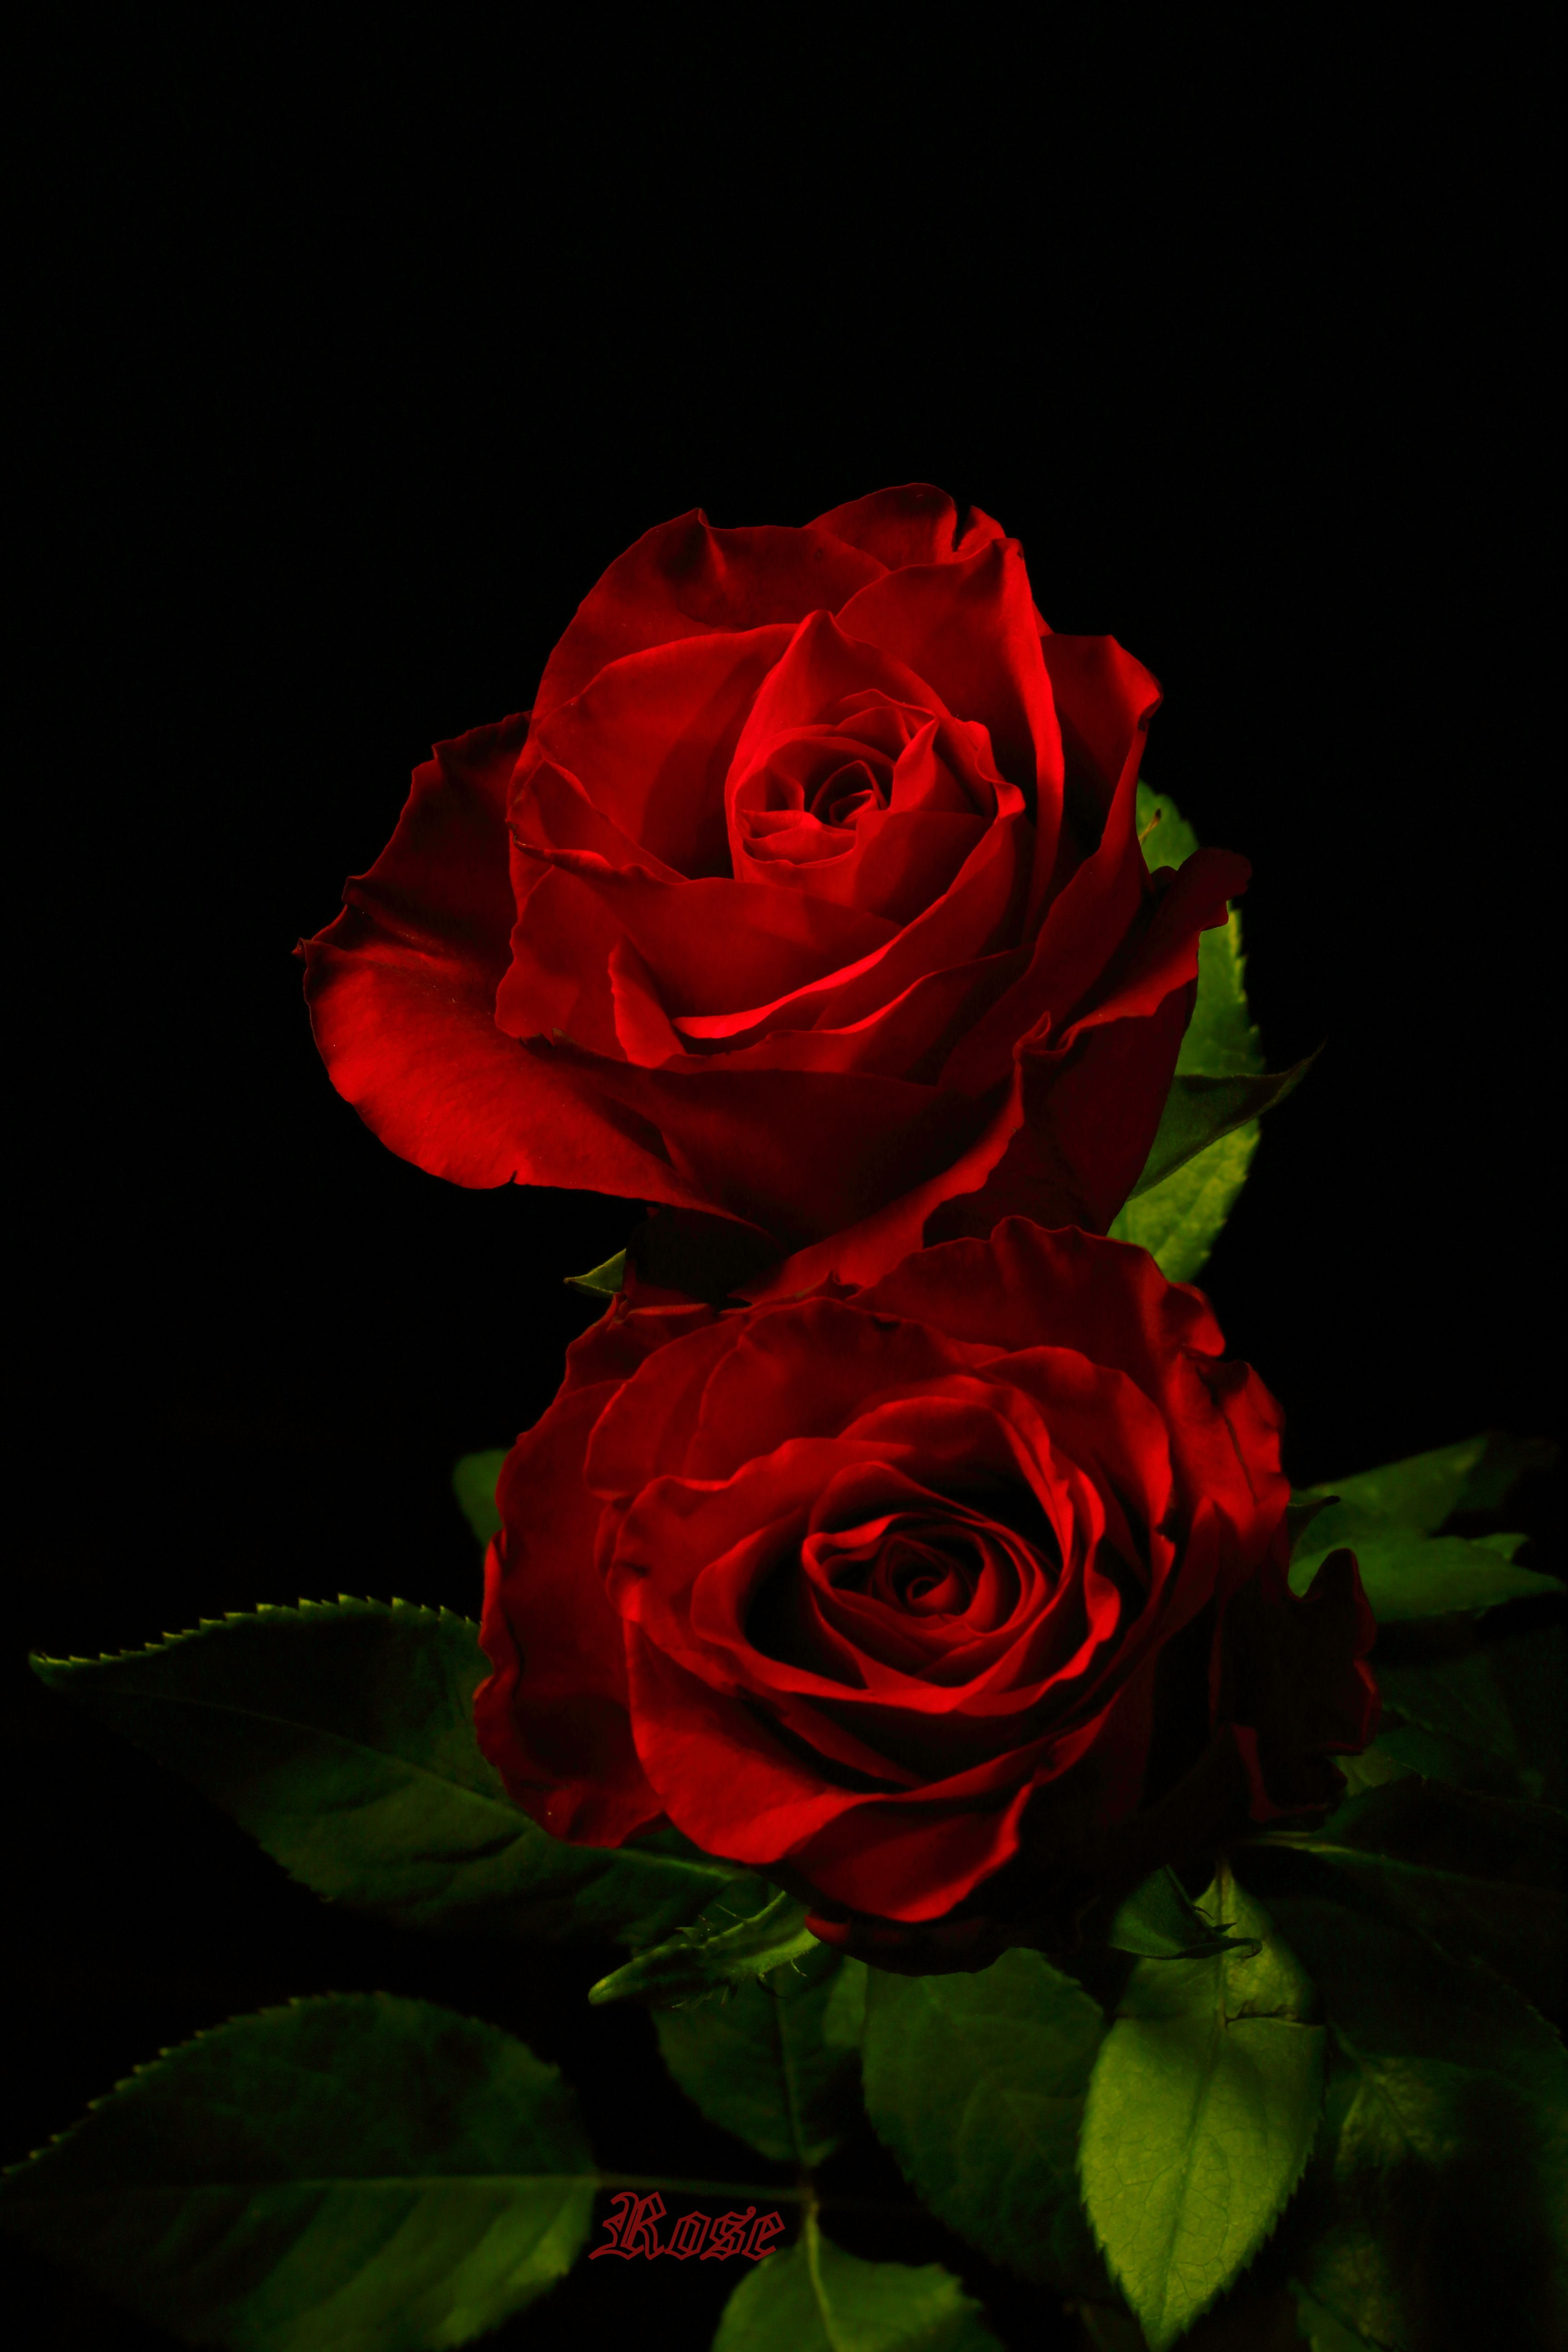 Pin by N.K on Red roses ️ ️3 Beautiful red roses